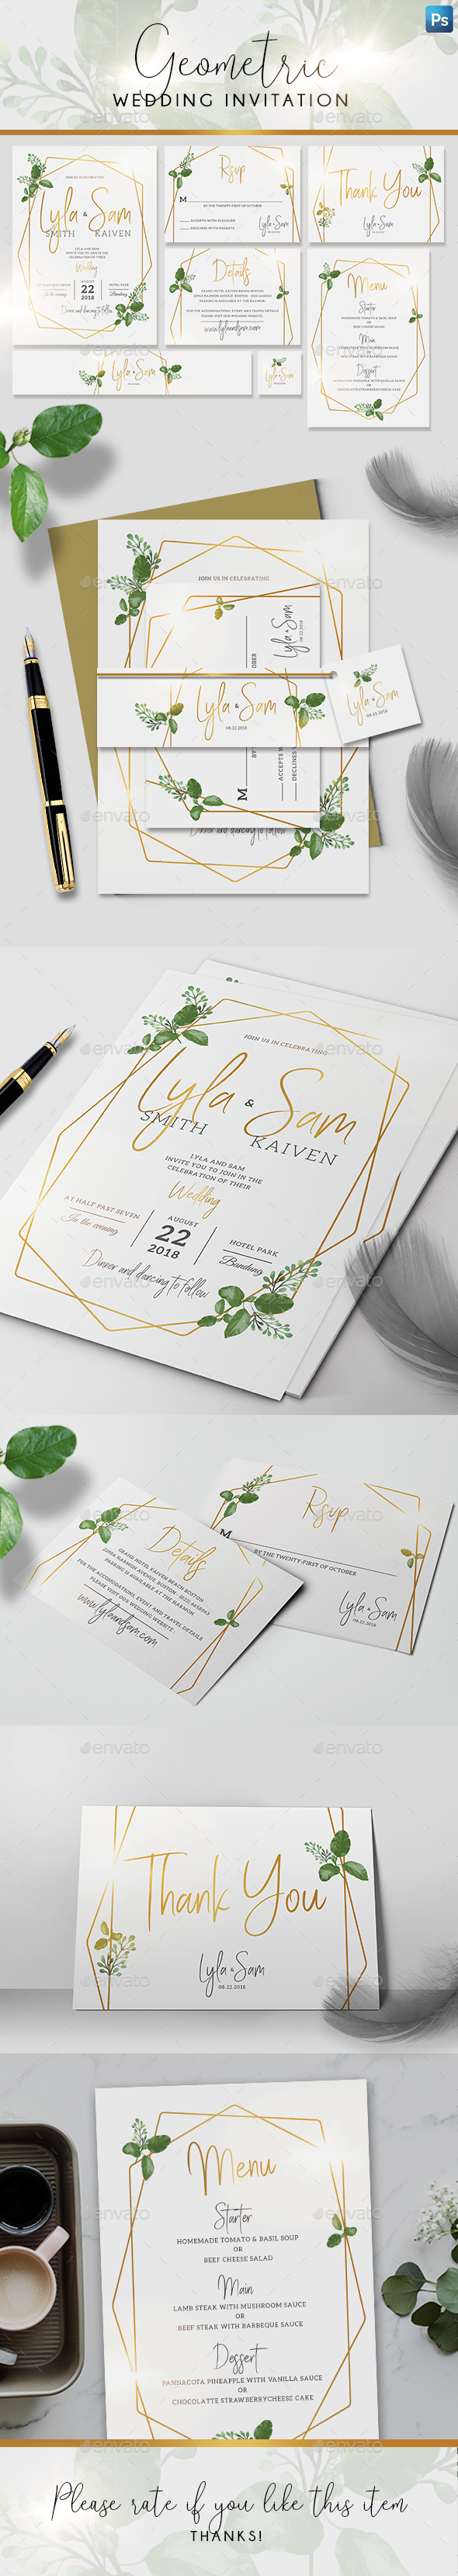 Geometric Wedding Invitation - Weddings Cards & Invites